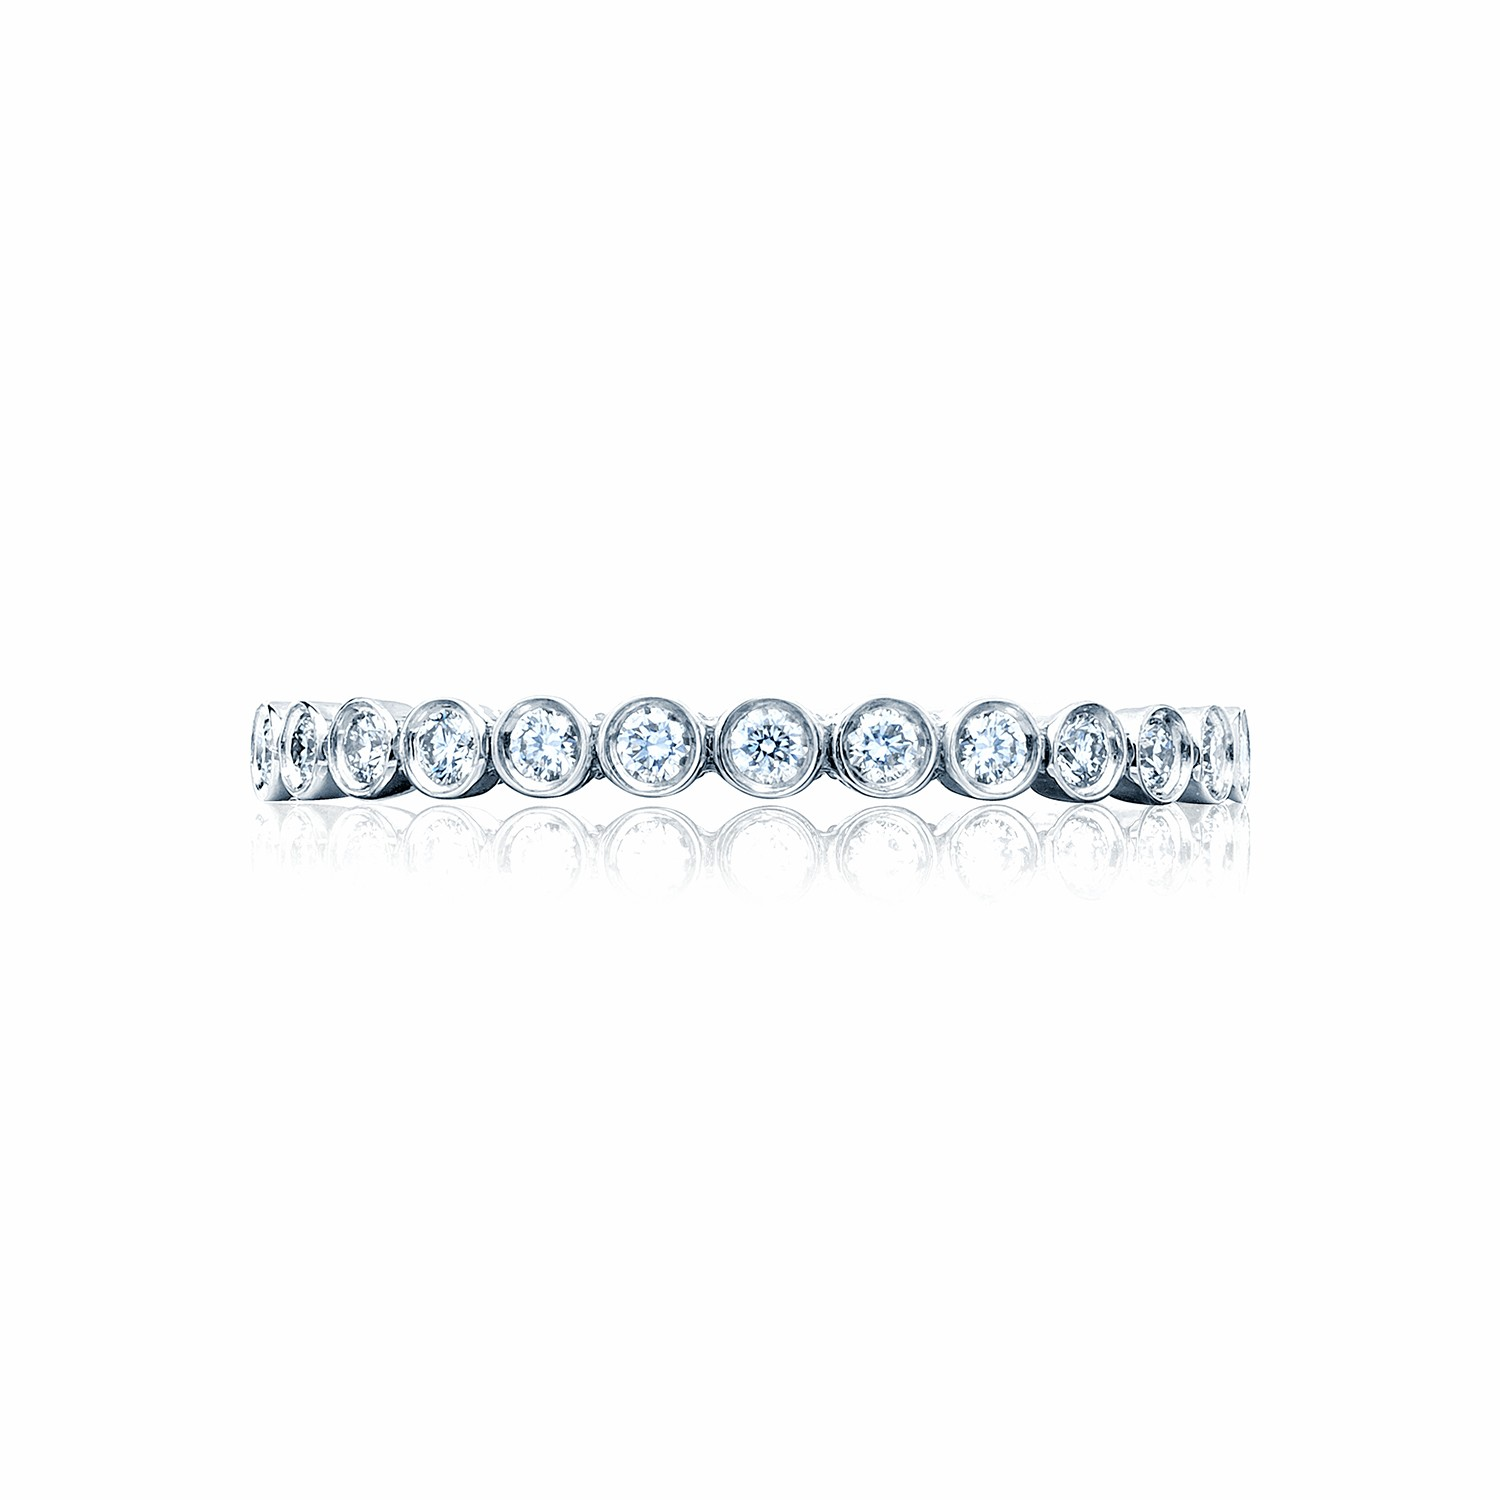 tacori sculpted crescent d diamond men s wedding band tacori wedding band Tacori Sculpted Crescent 2 Diamond Eternity Wedding Band